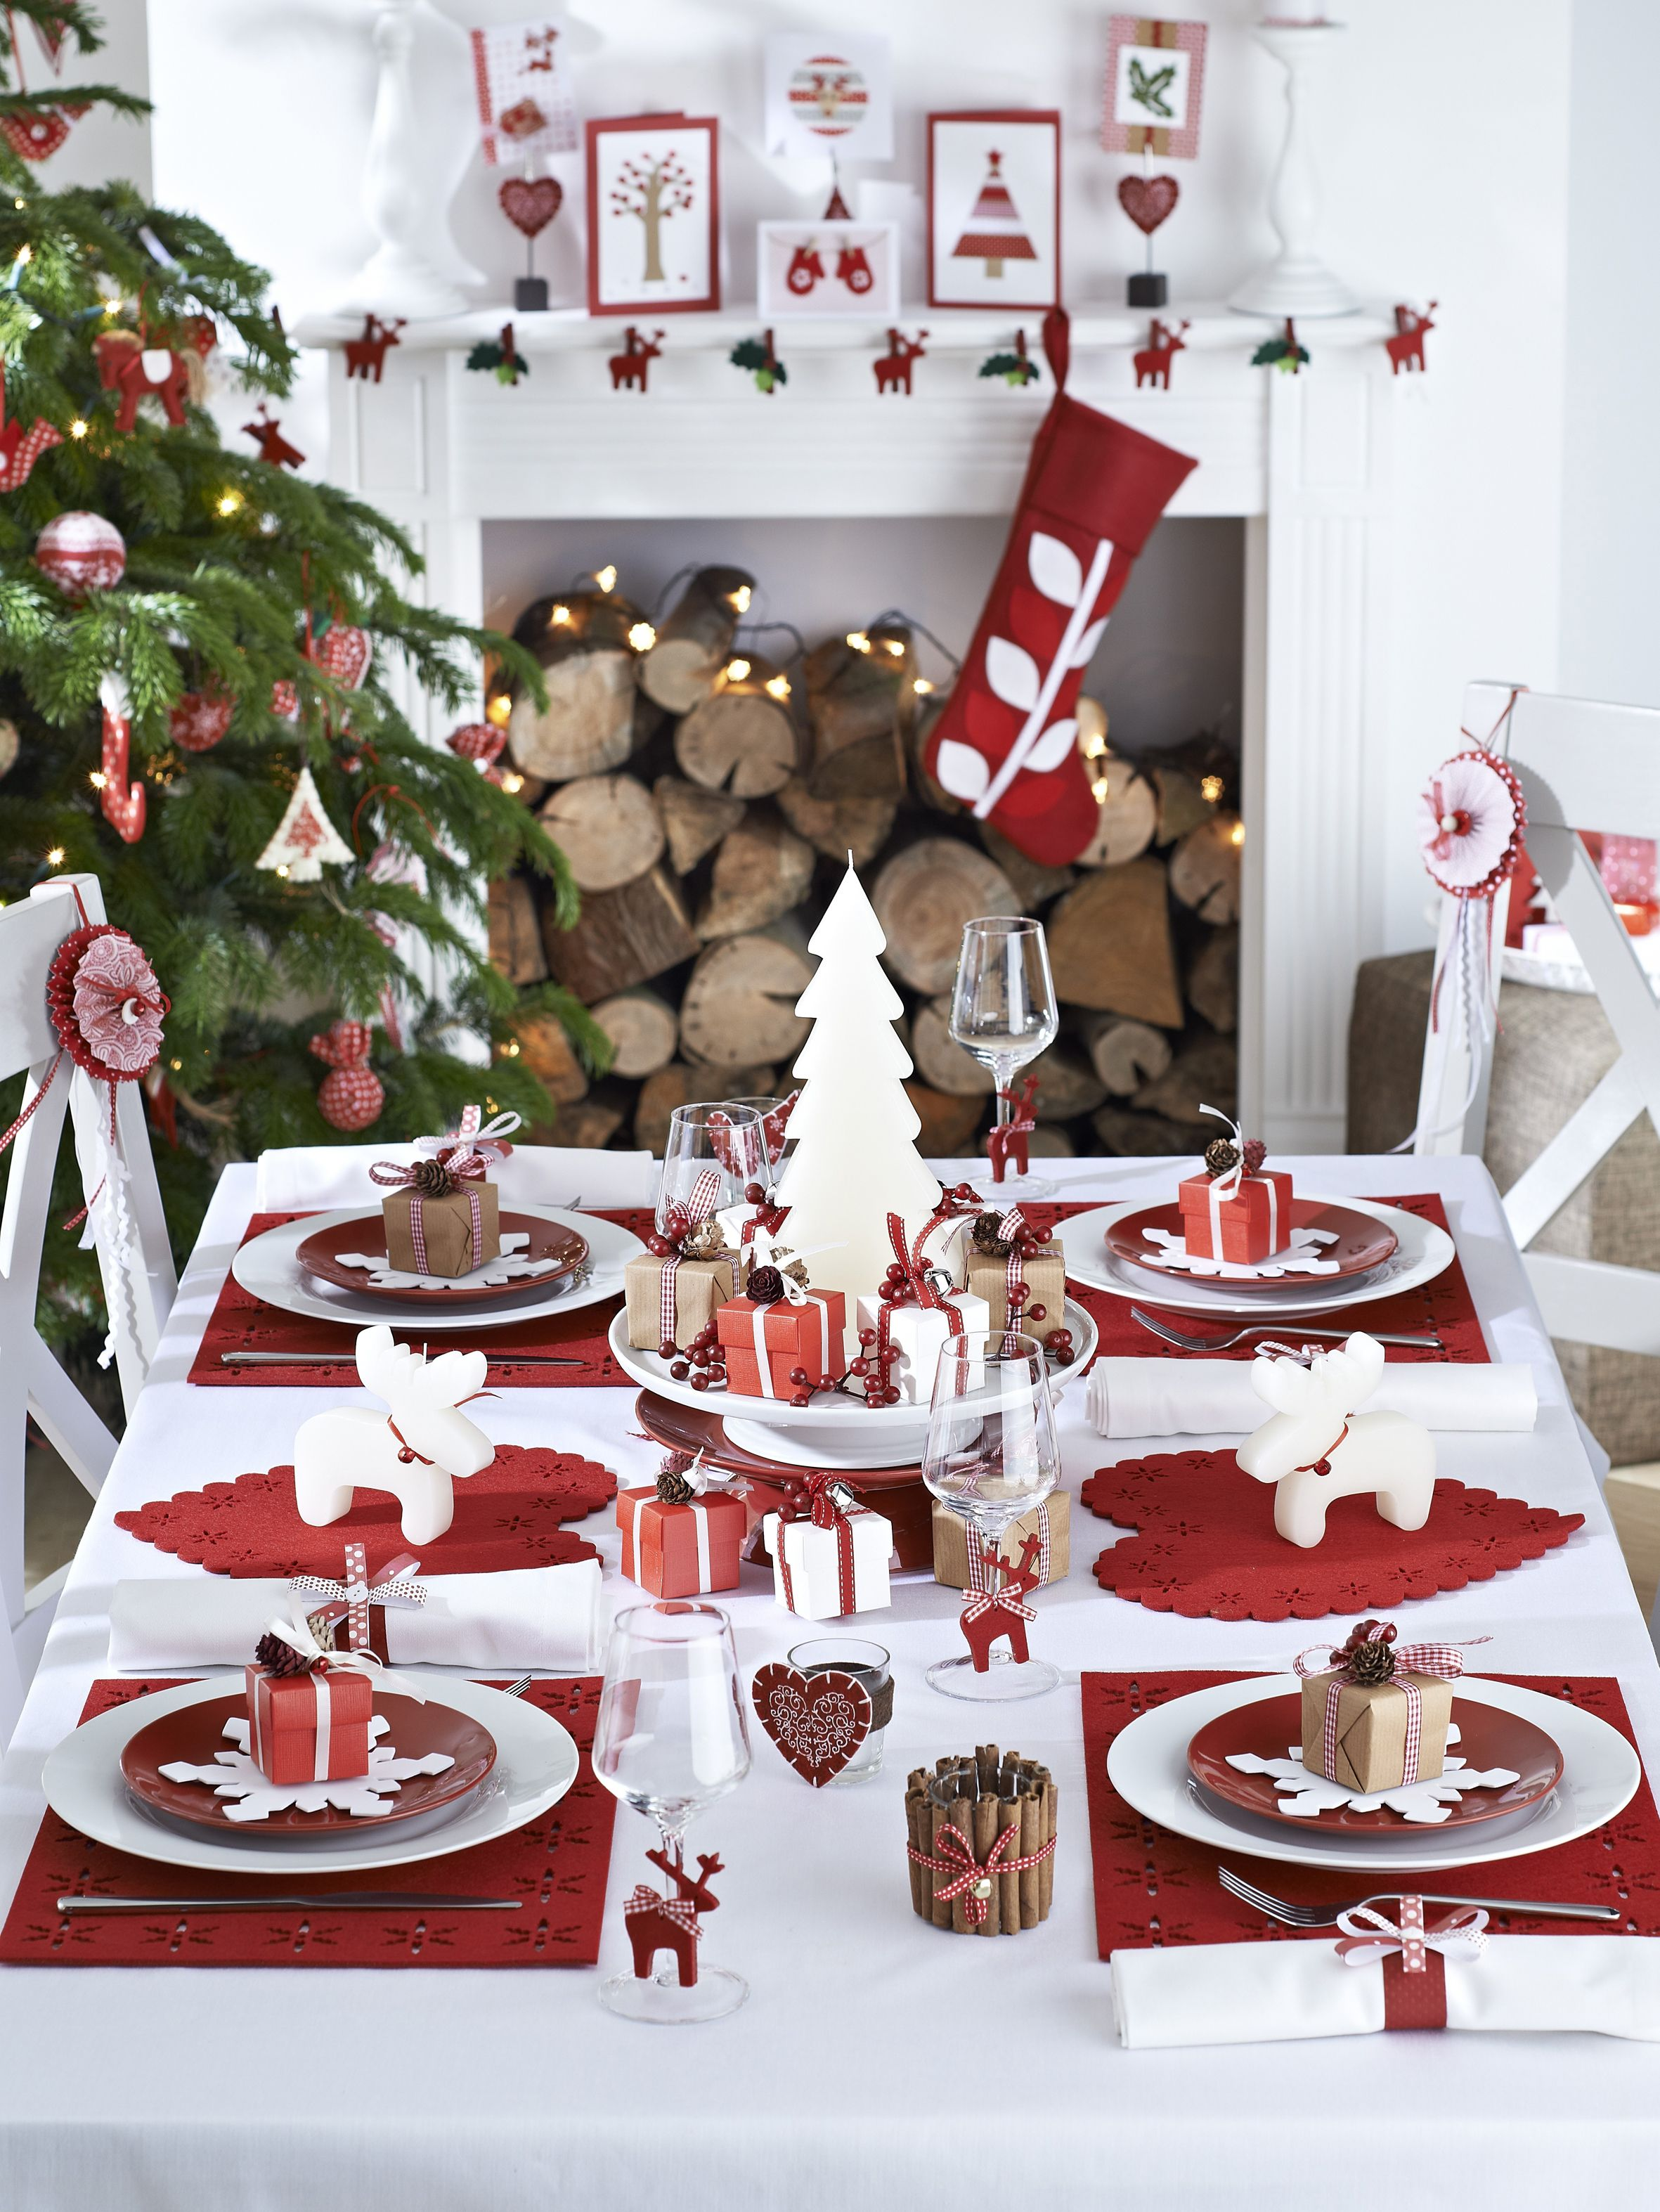 Pinterest Deco De Table Contáctenos The Most Wonderful Times Of The Year Pinterest